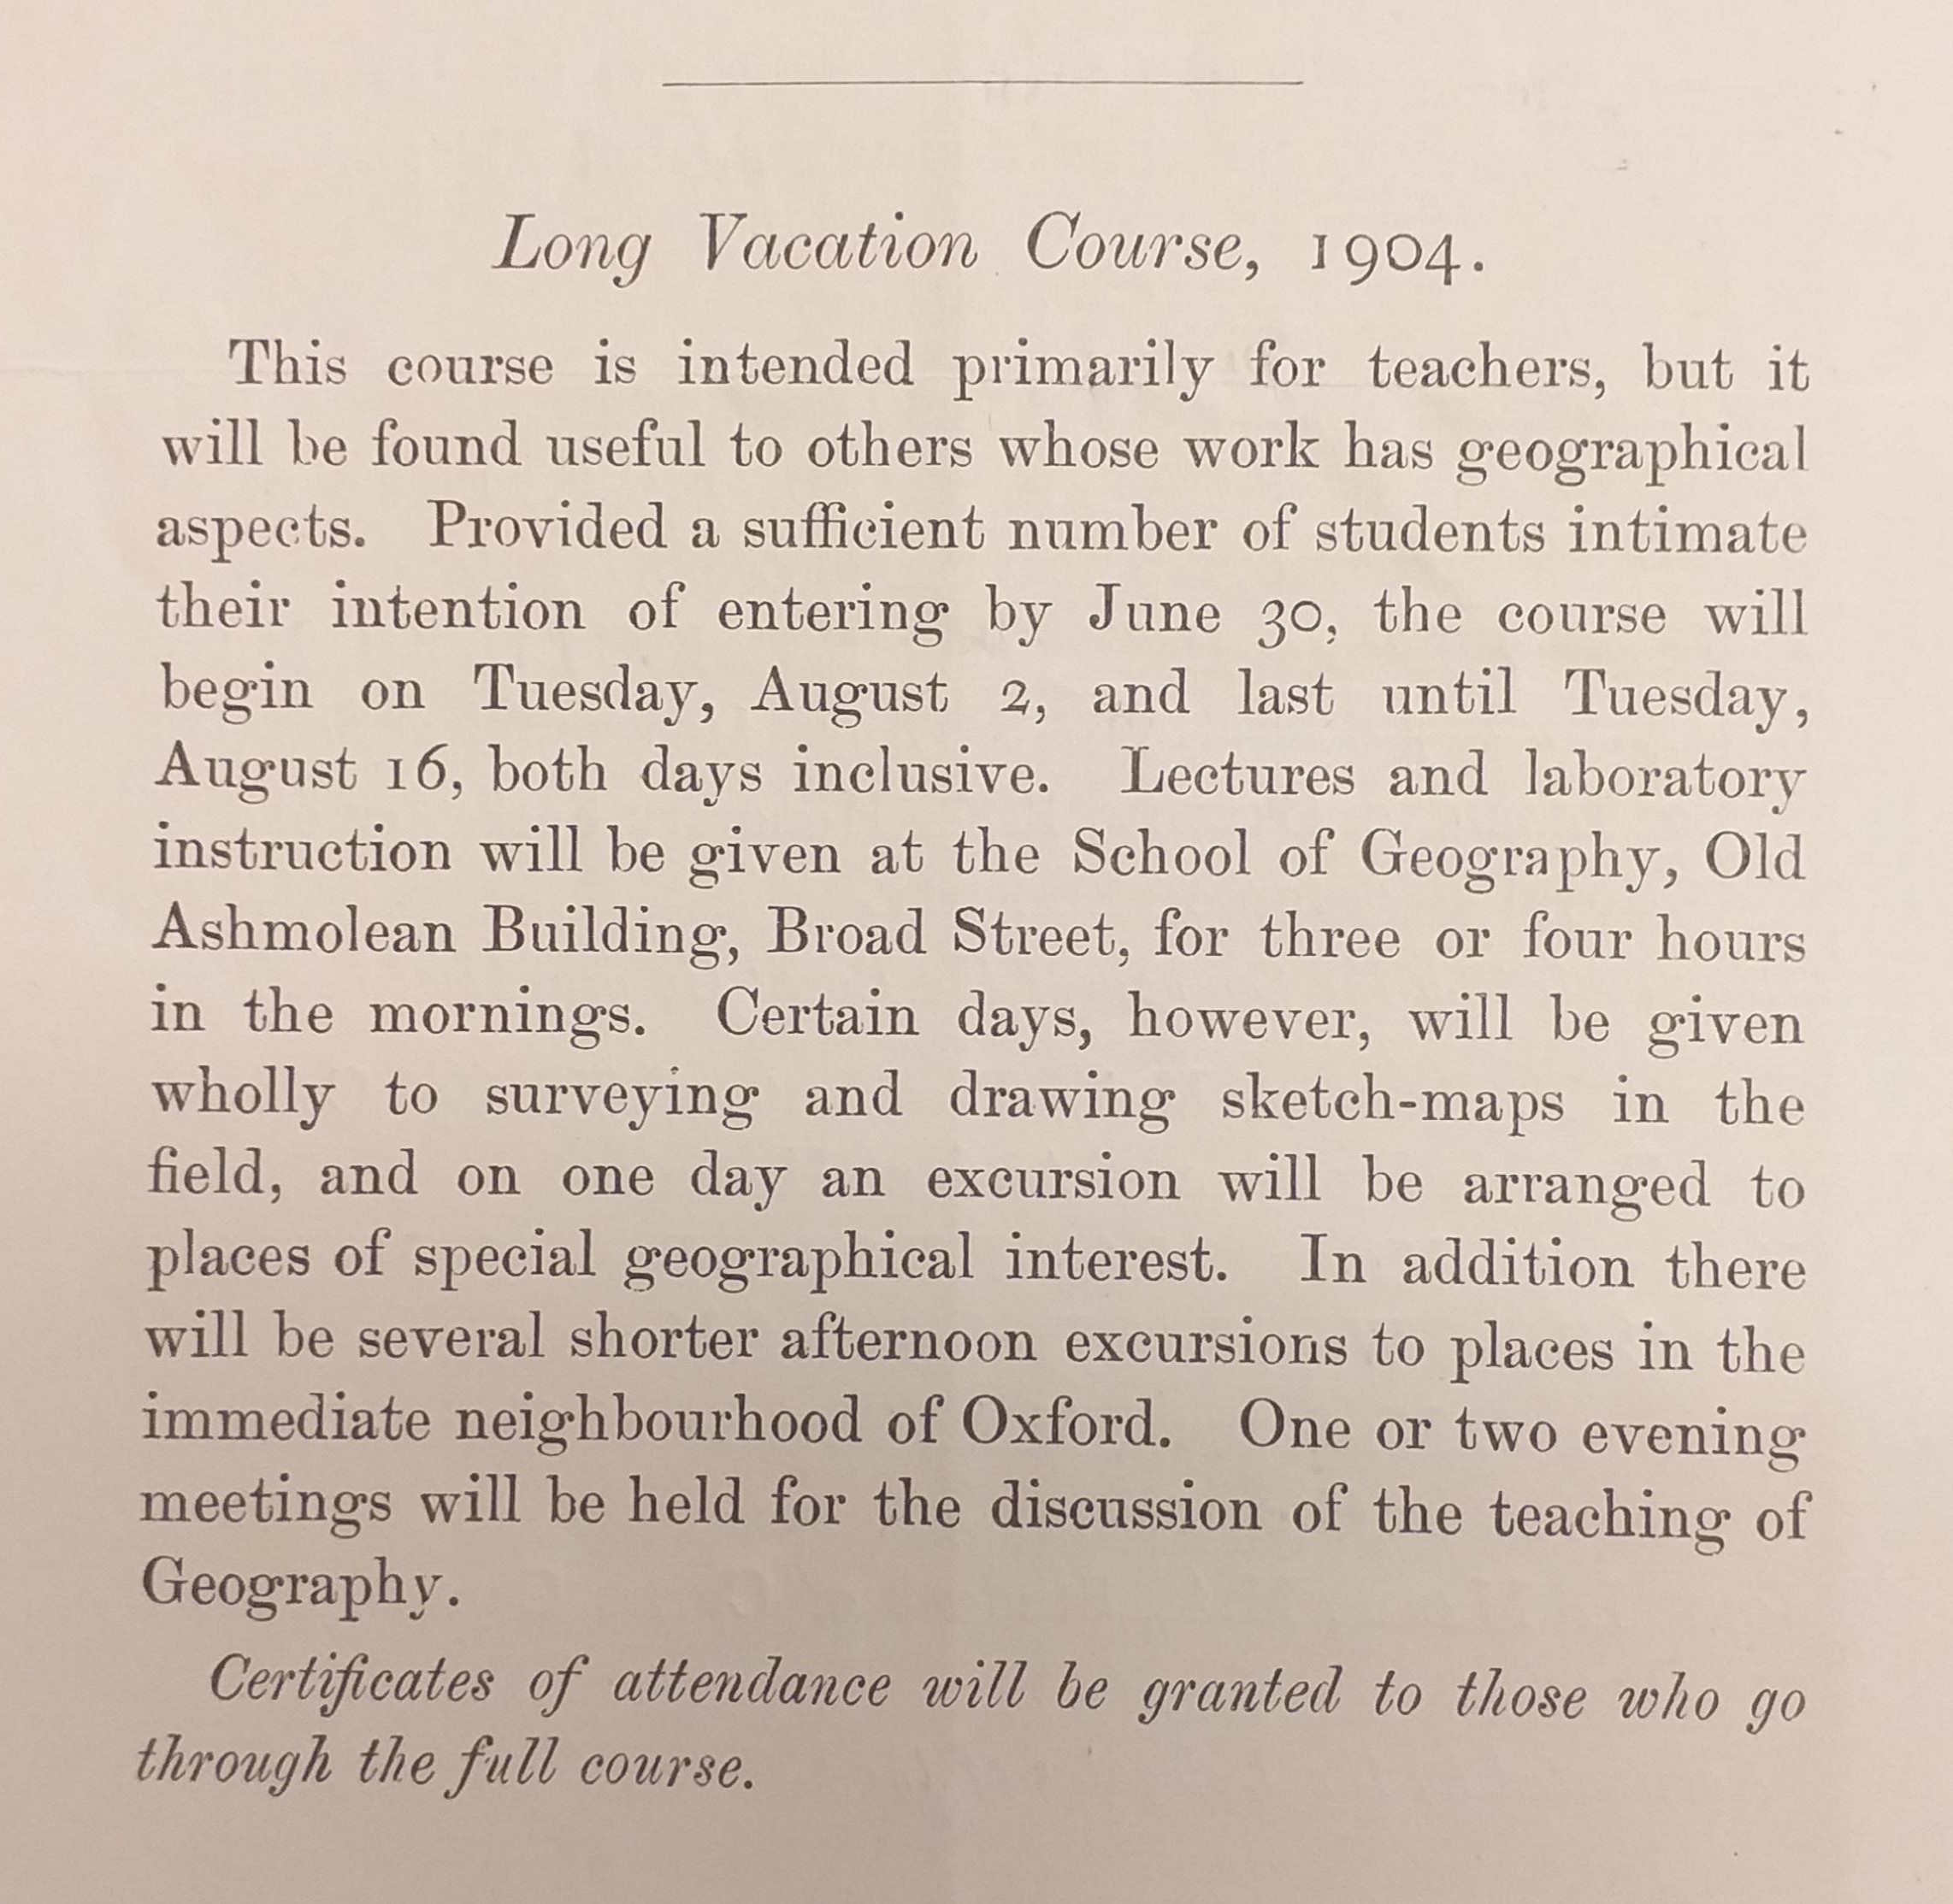 1904 vacation course details